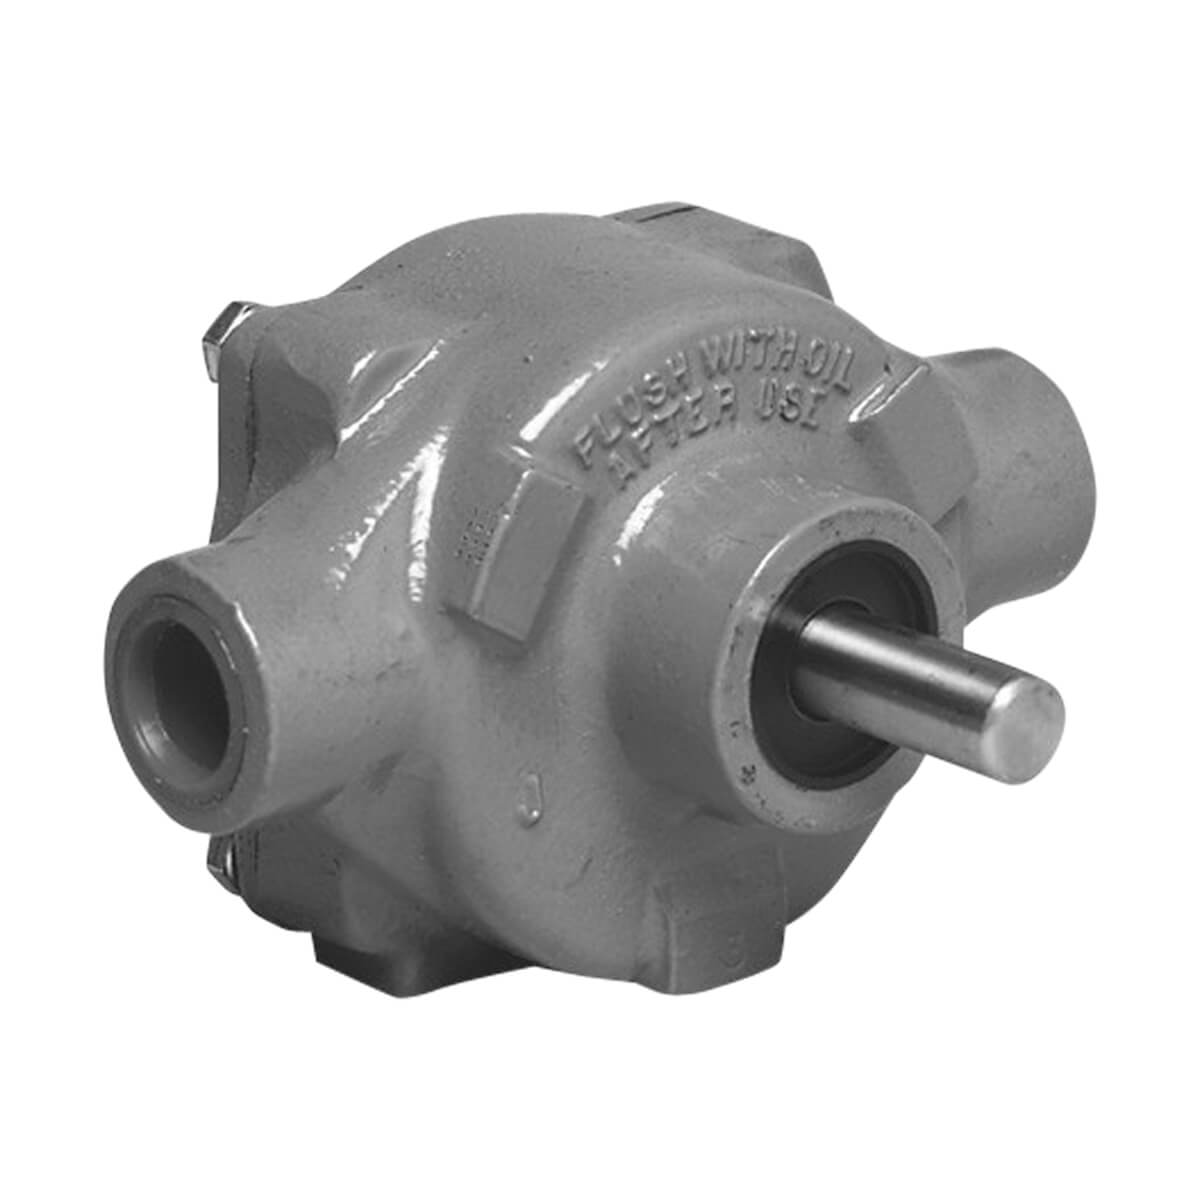 Hypro Roller Pumps - 400IC